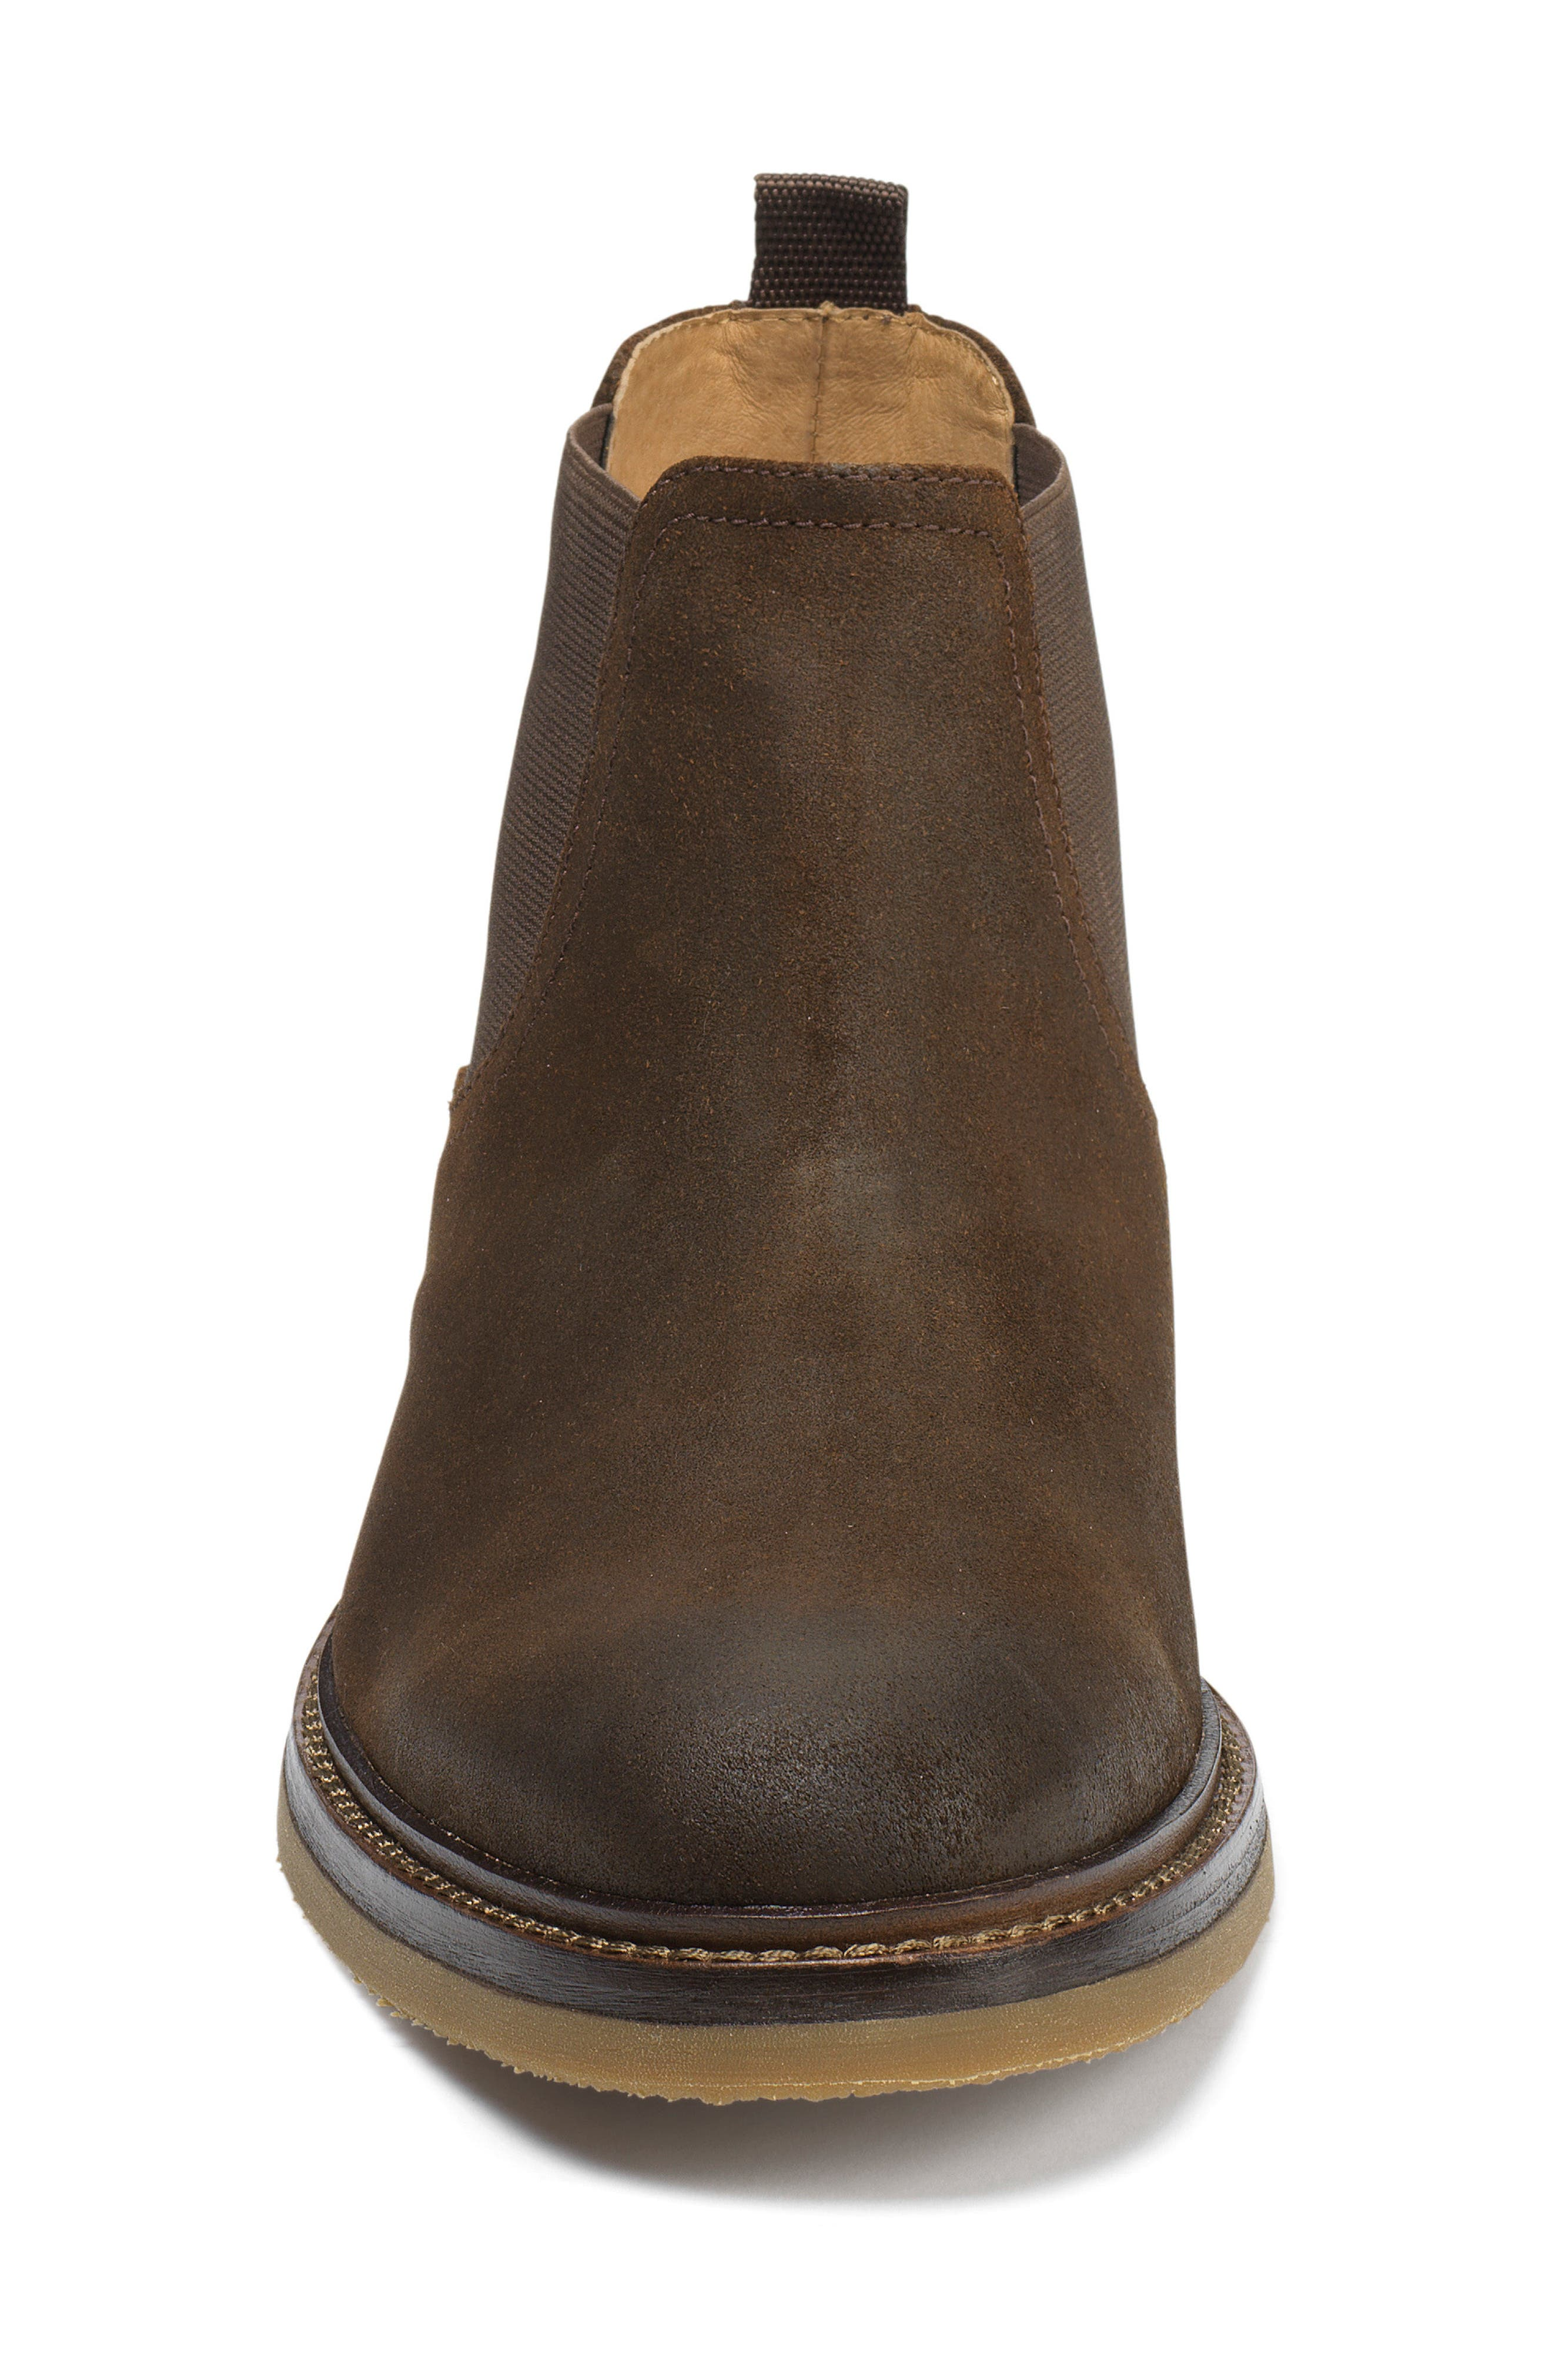 Carter Chelsea Boot,                             Alternate thumbnail 3, color,                             Snuff Waxed Suede